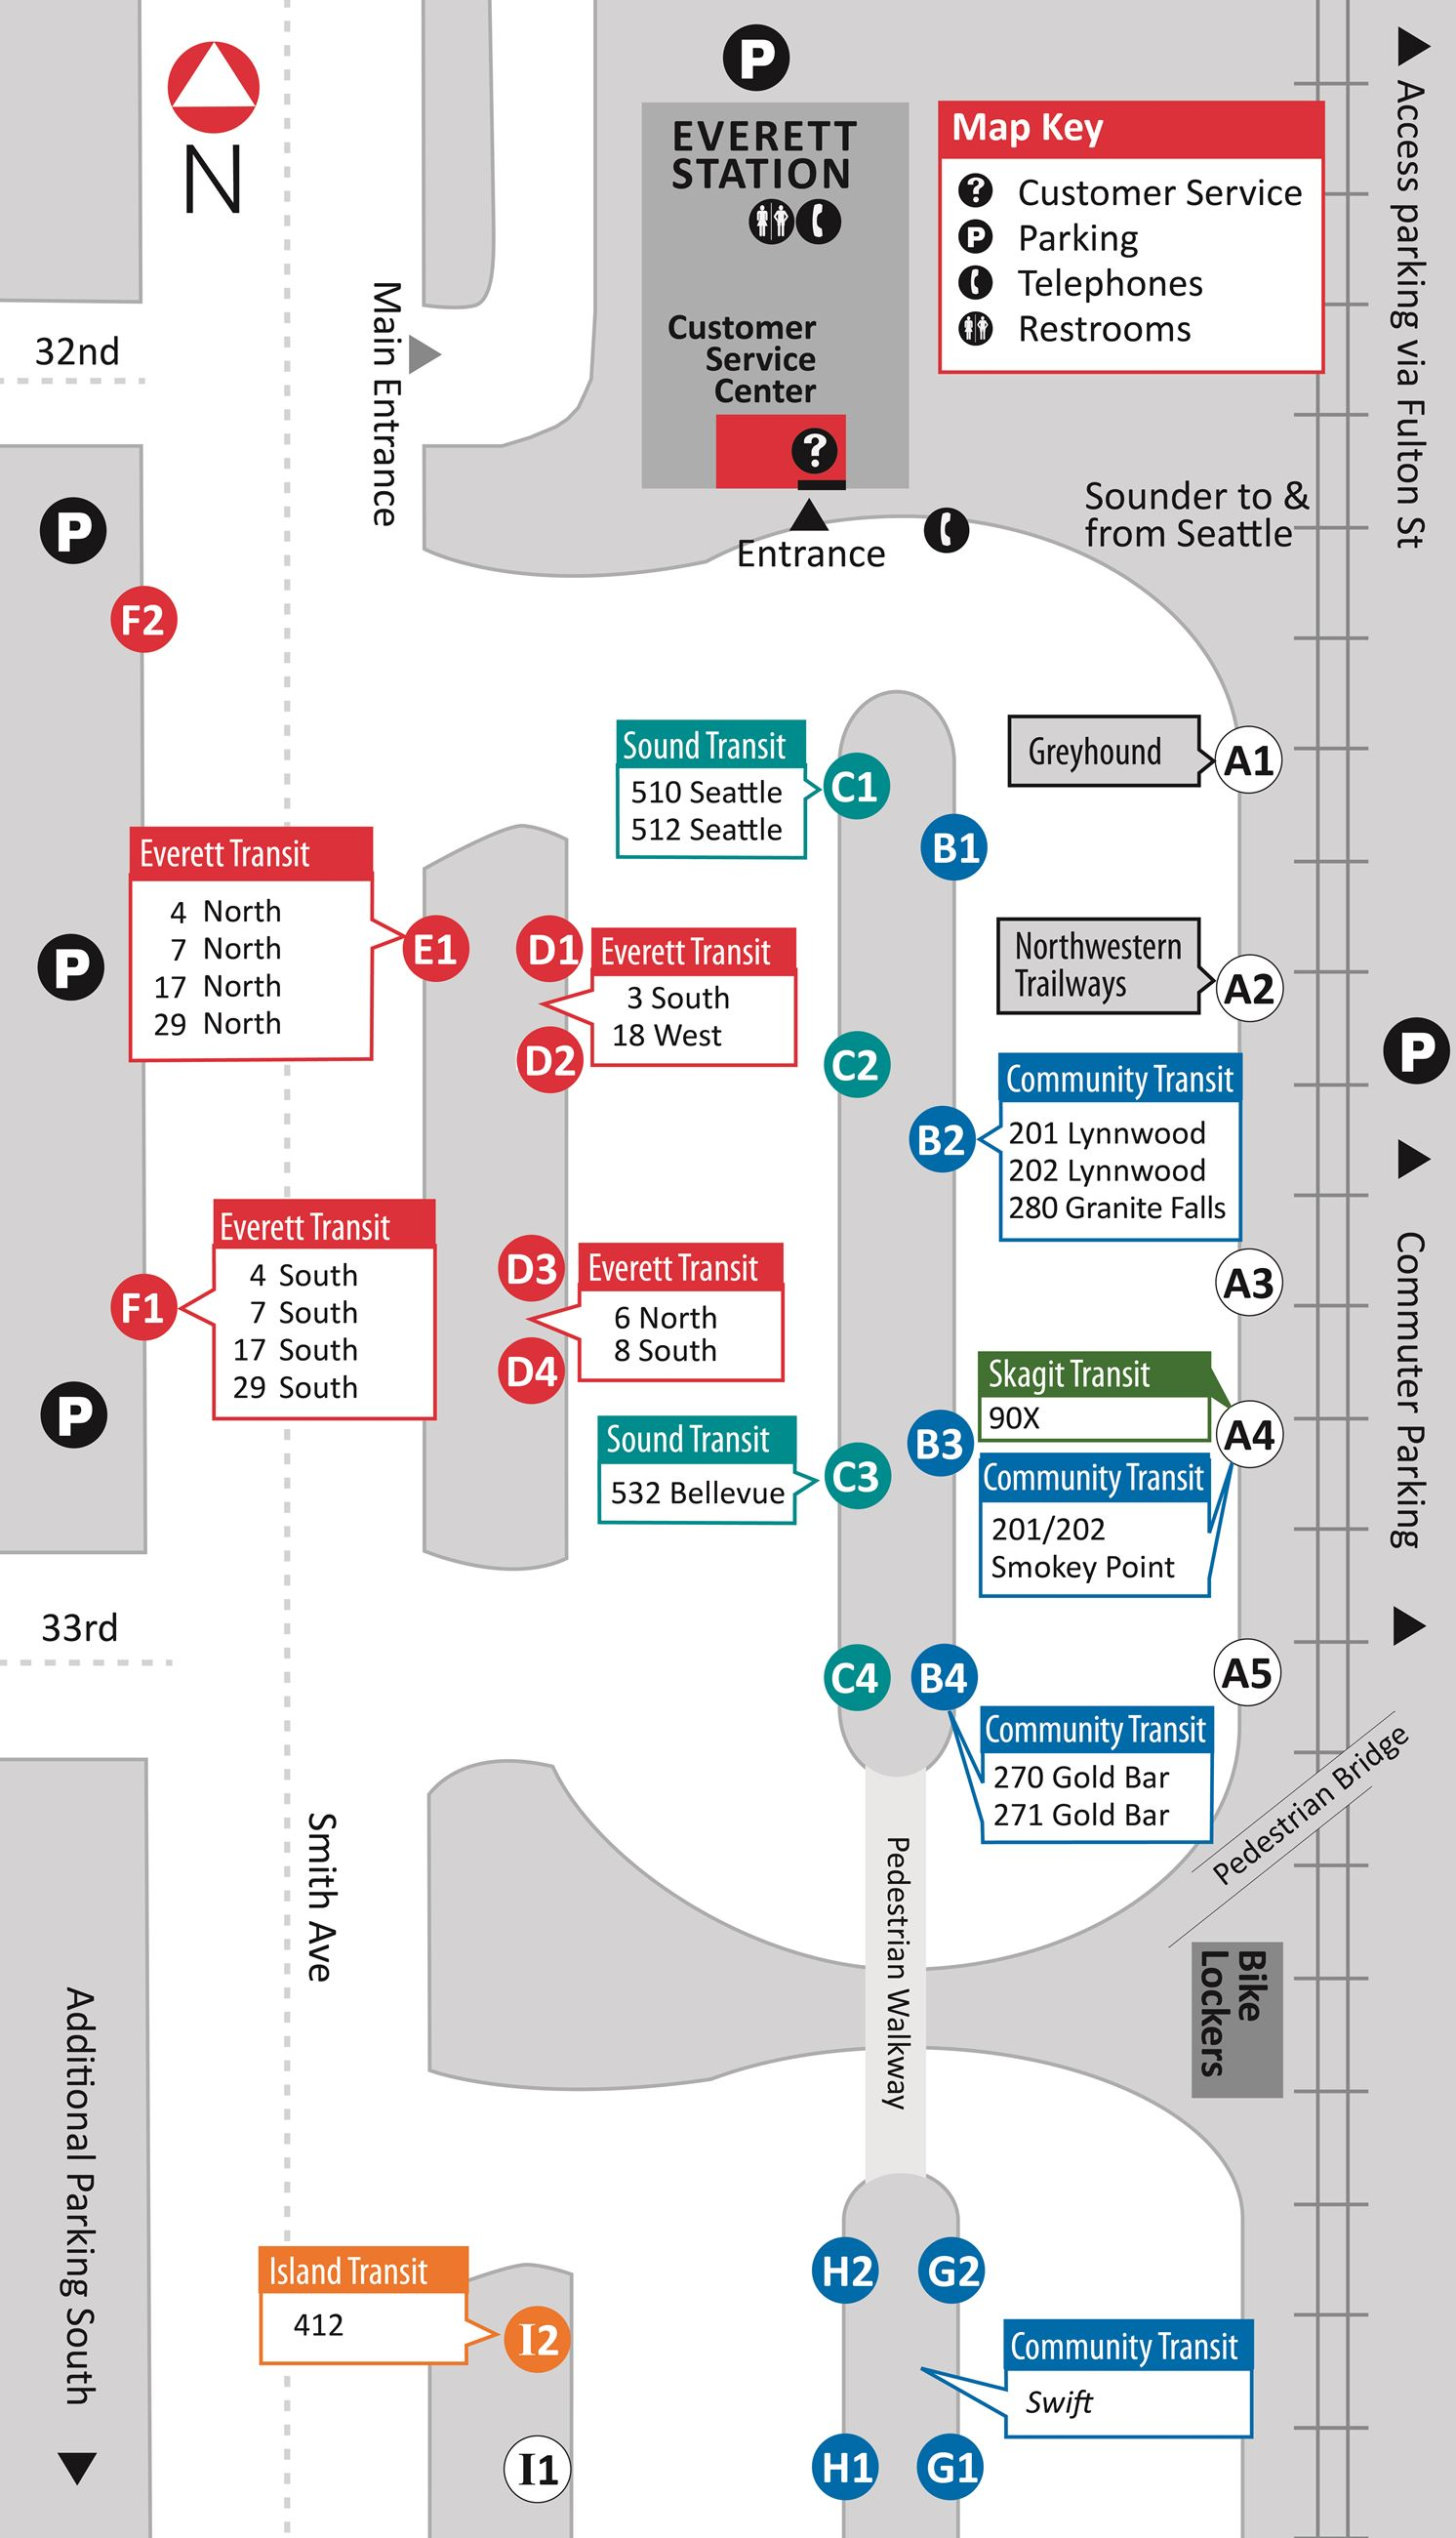 Everett Station bus bay map